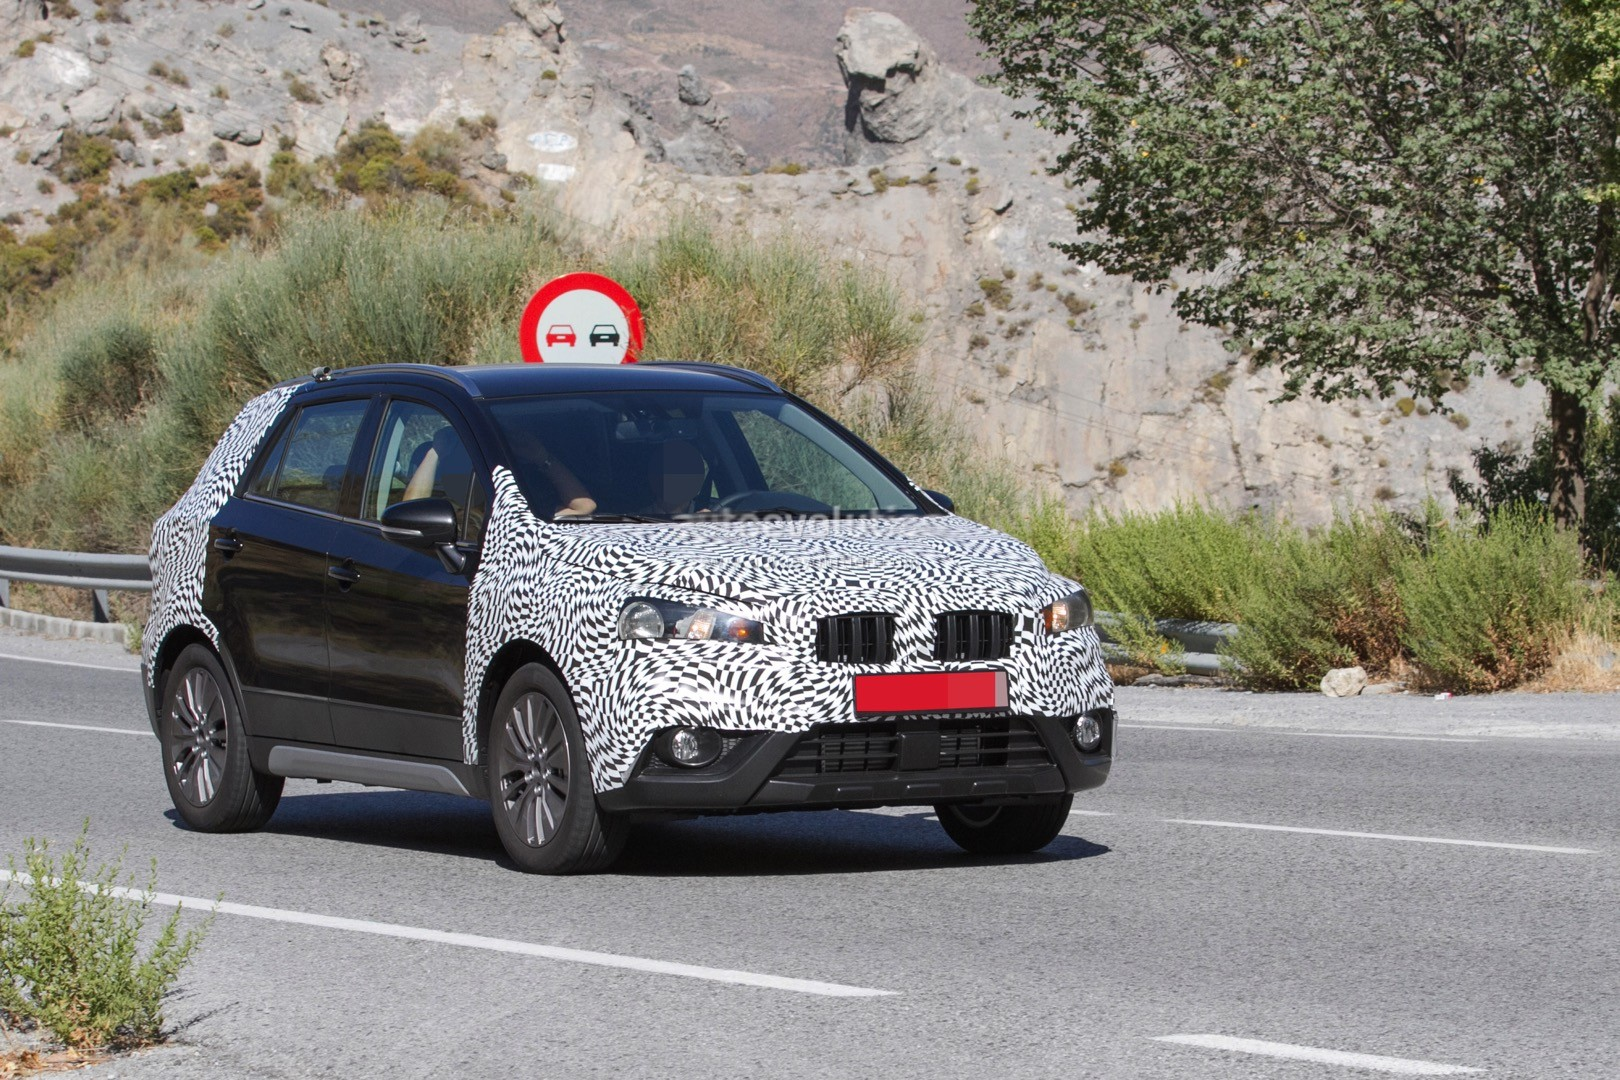 2016 suzuki sx4 s cross facelift spied testing for the. Black Bedroom Furniture Sets. Home Design Ideas